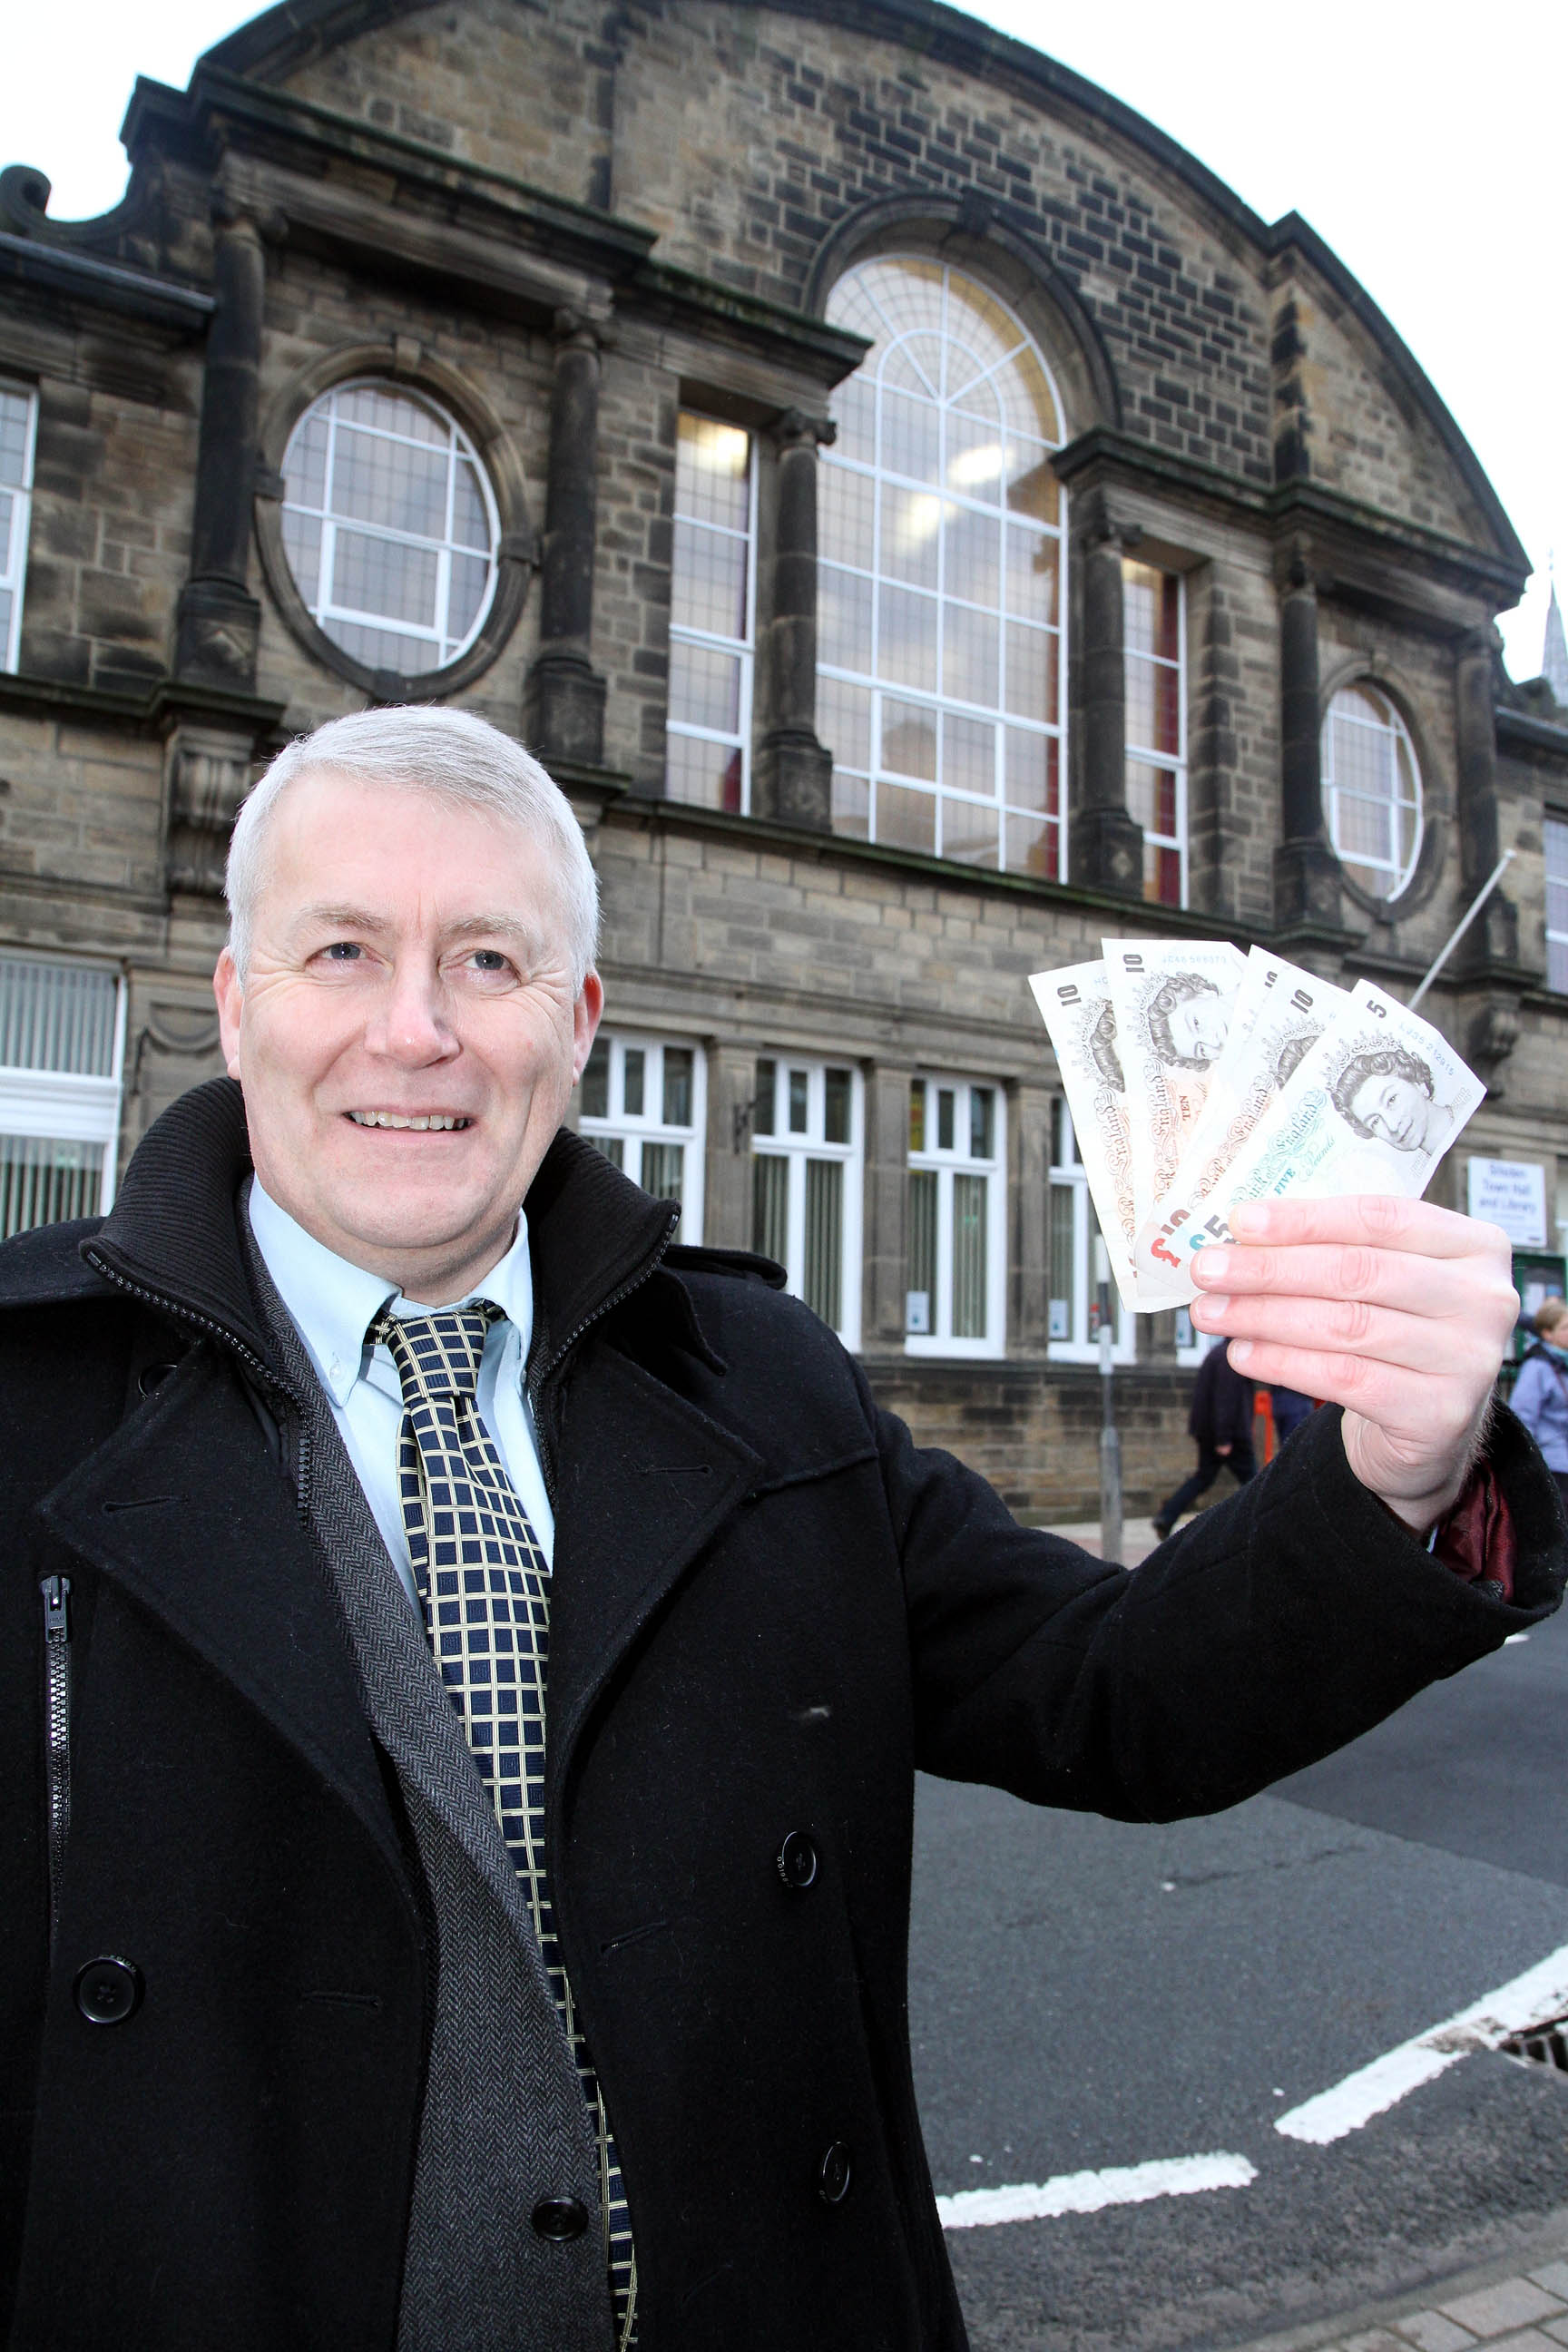 Councillor Andrew Mallinson, who has footed the £45 bill of bringing a scrutiny meeting to Silsden out of his own pocket